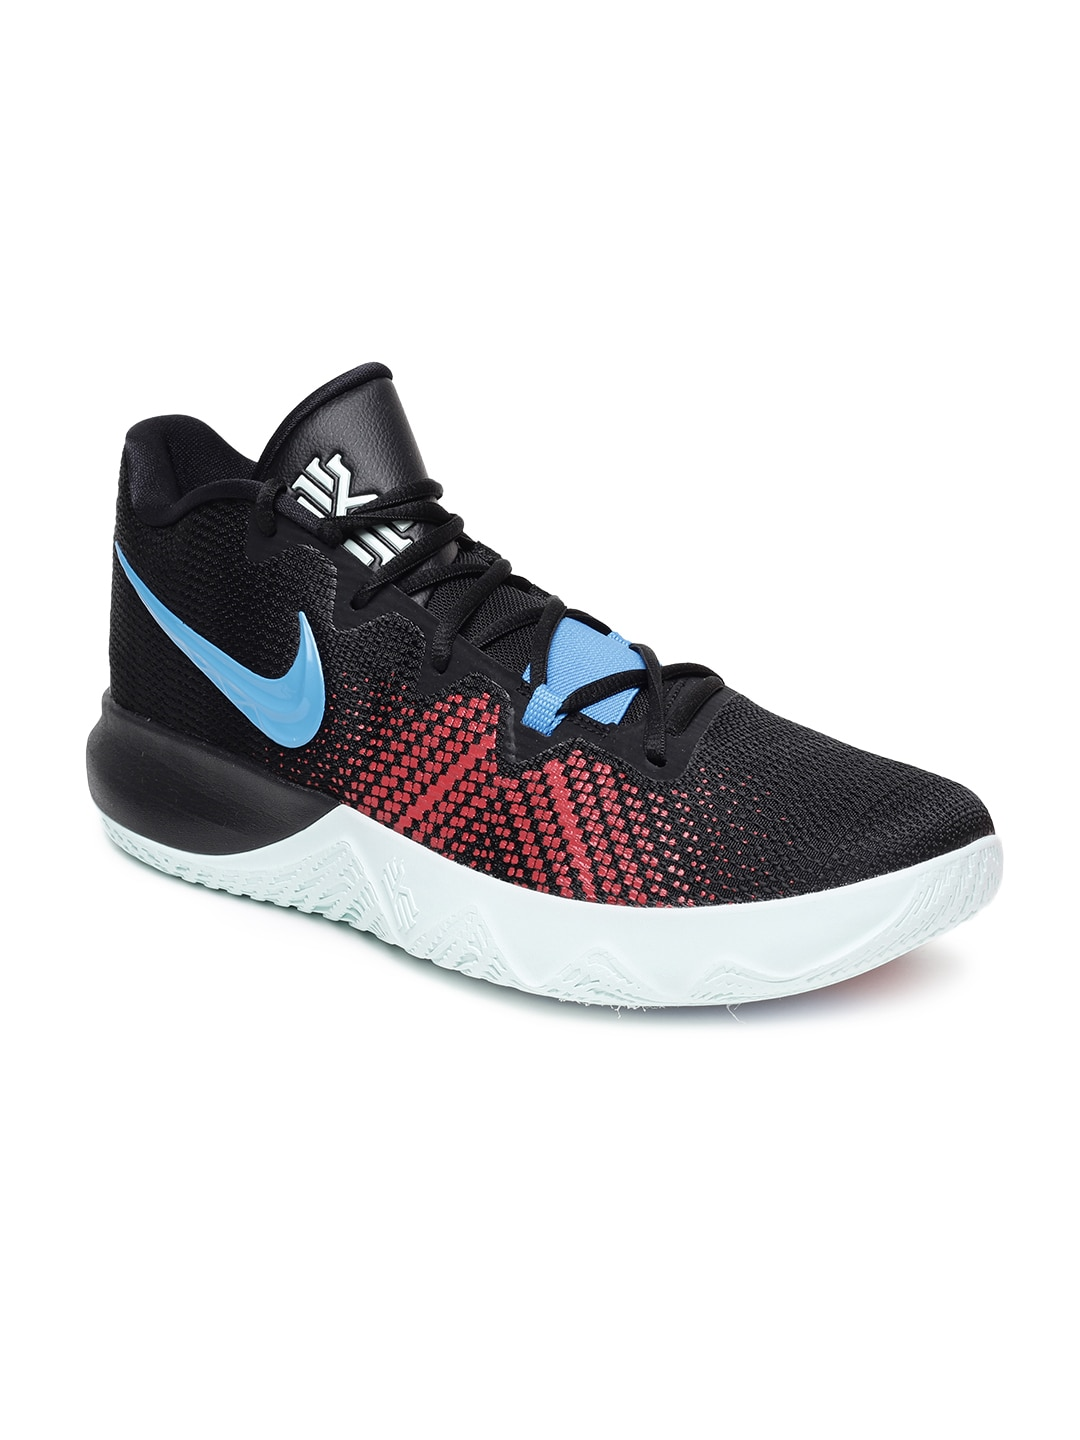 Nike Basketball Shoes  5d6071c73